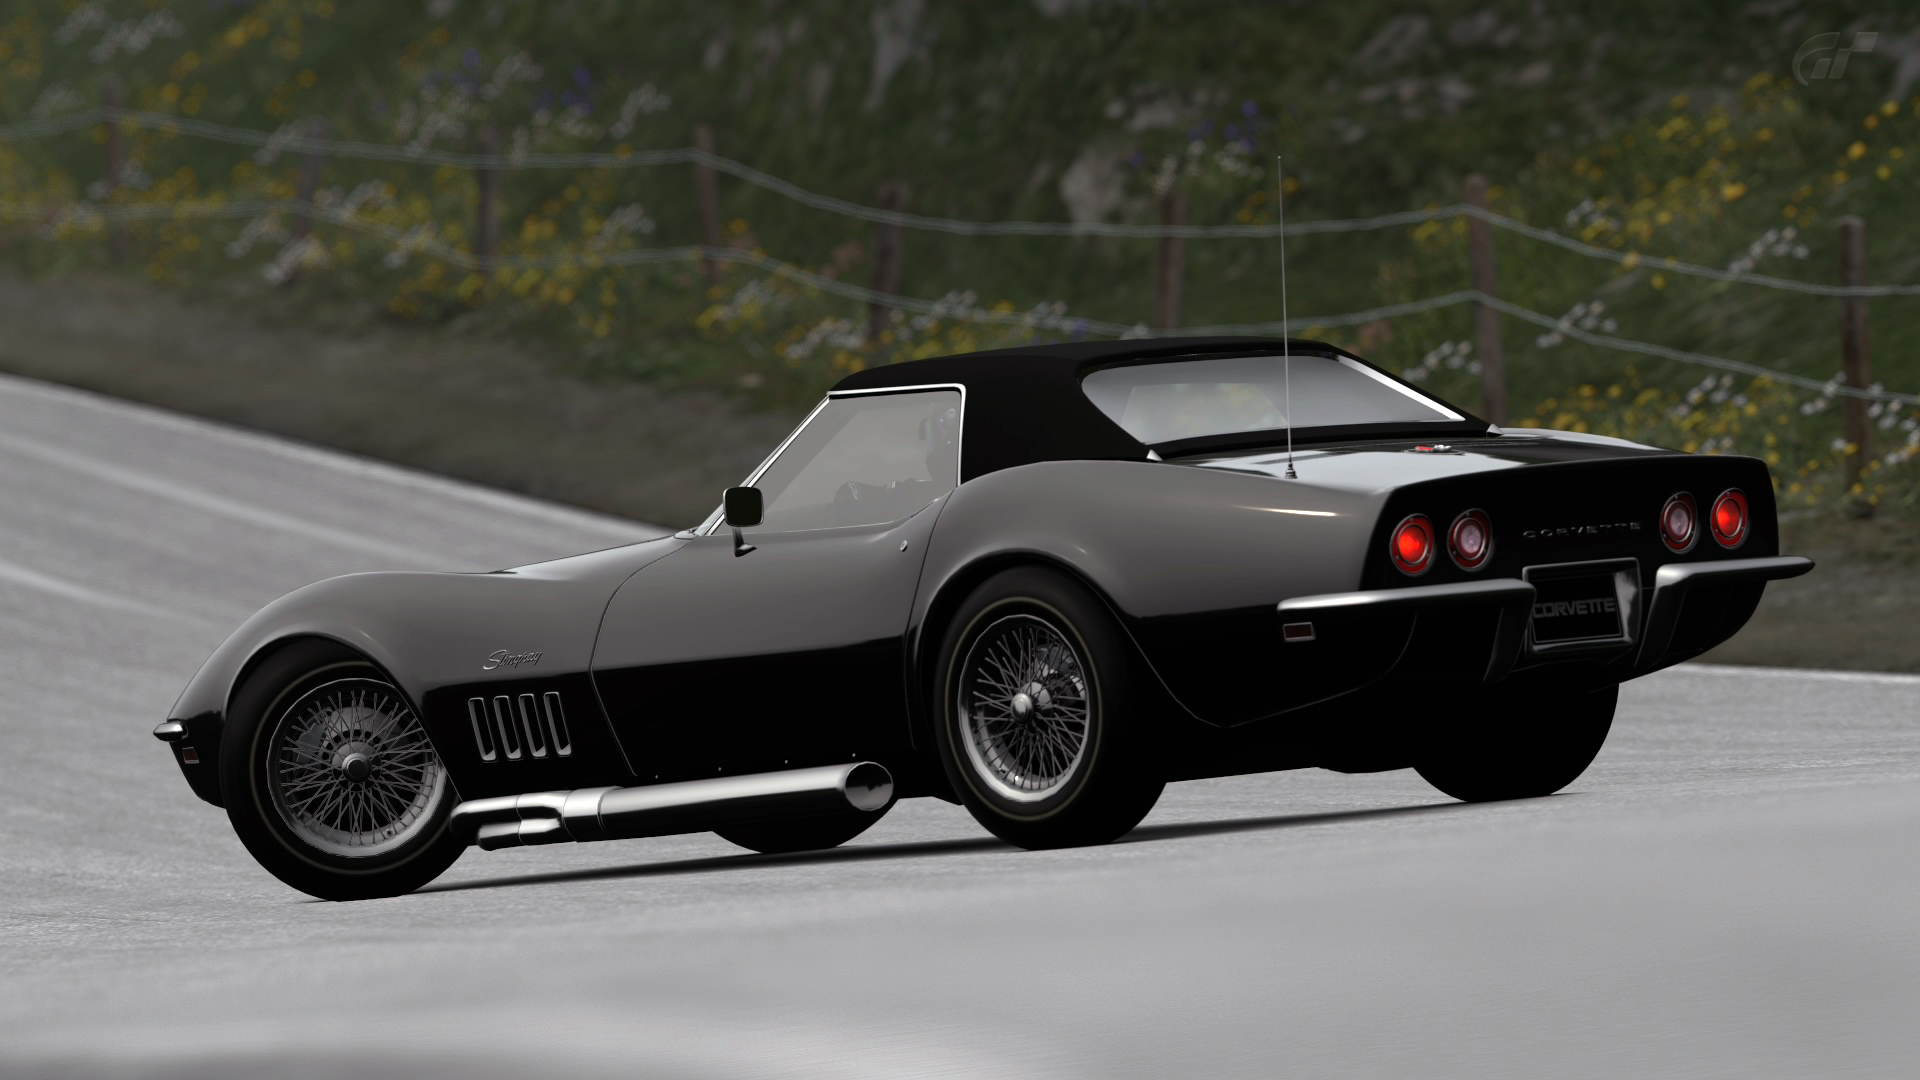 1969 chevy corvette stingray c3 convertible gt6 by vertualissimo on deviantart. Black Bedroom Furniture Sets. Home Design Ideas